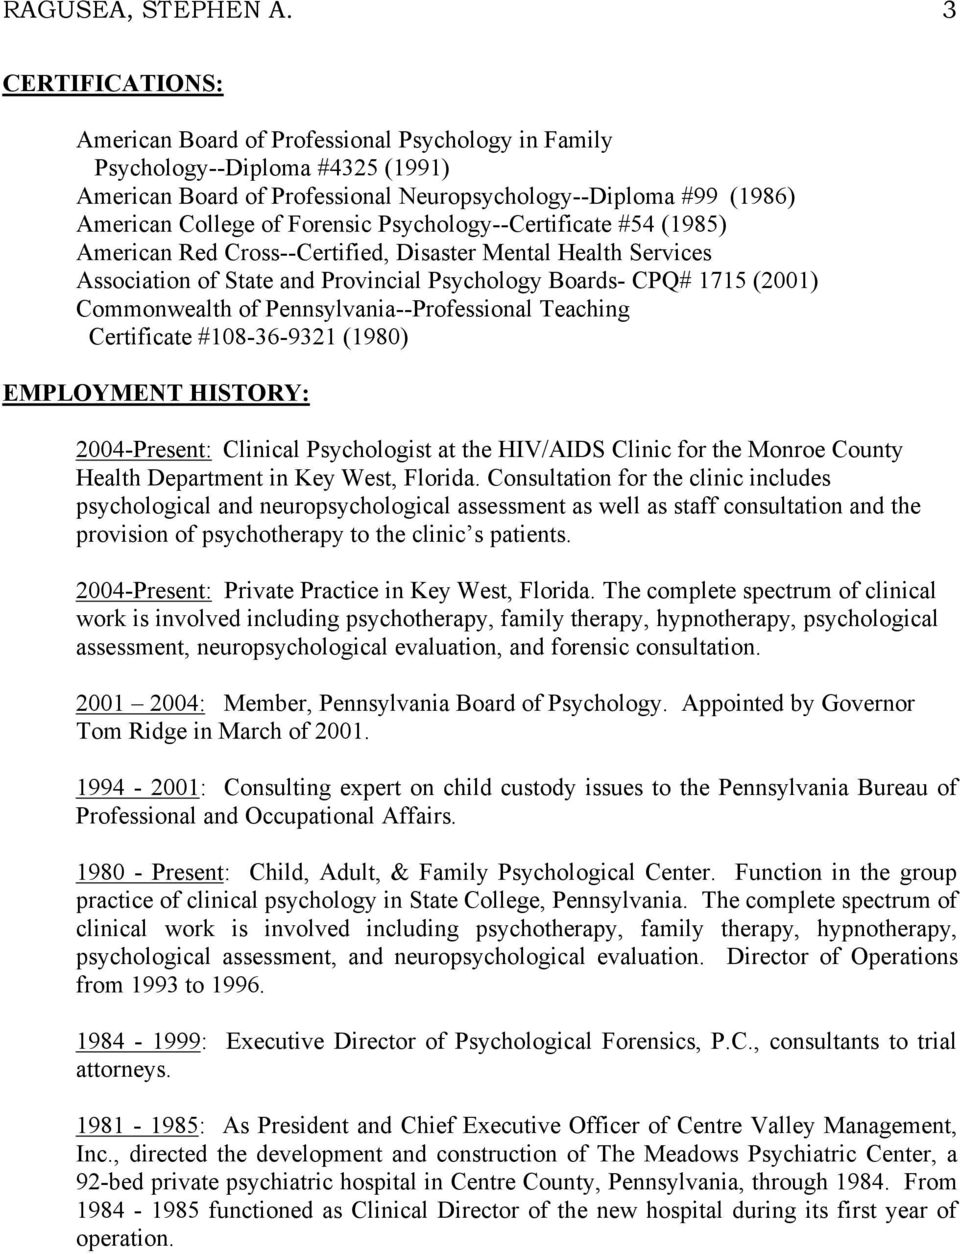 Psychology--Certificate #54 (1985) American Red Cross--Certified, Disaster Mental Health Services Association of State and Provincial Psychology Boards- CPQ# 1715 (2001) Commonwealth of